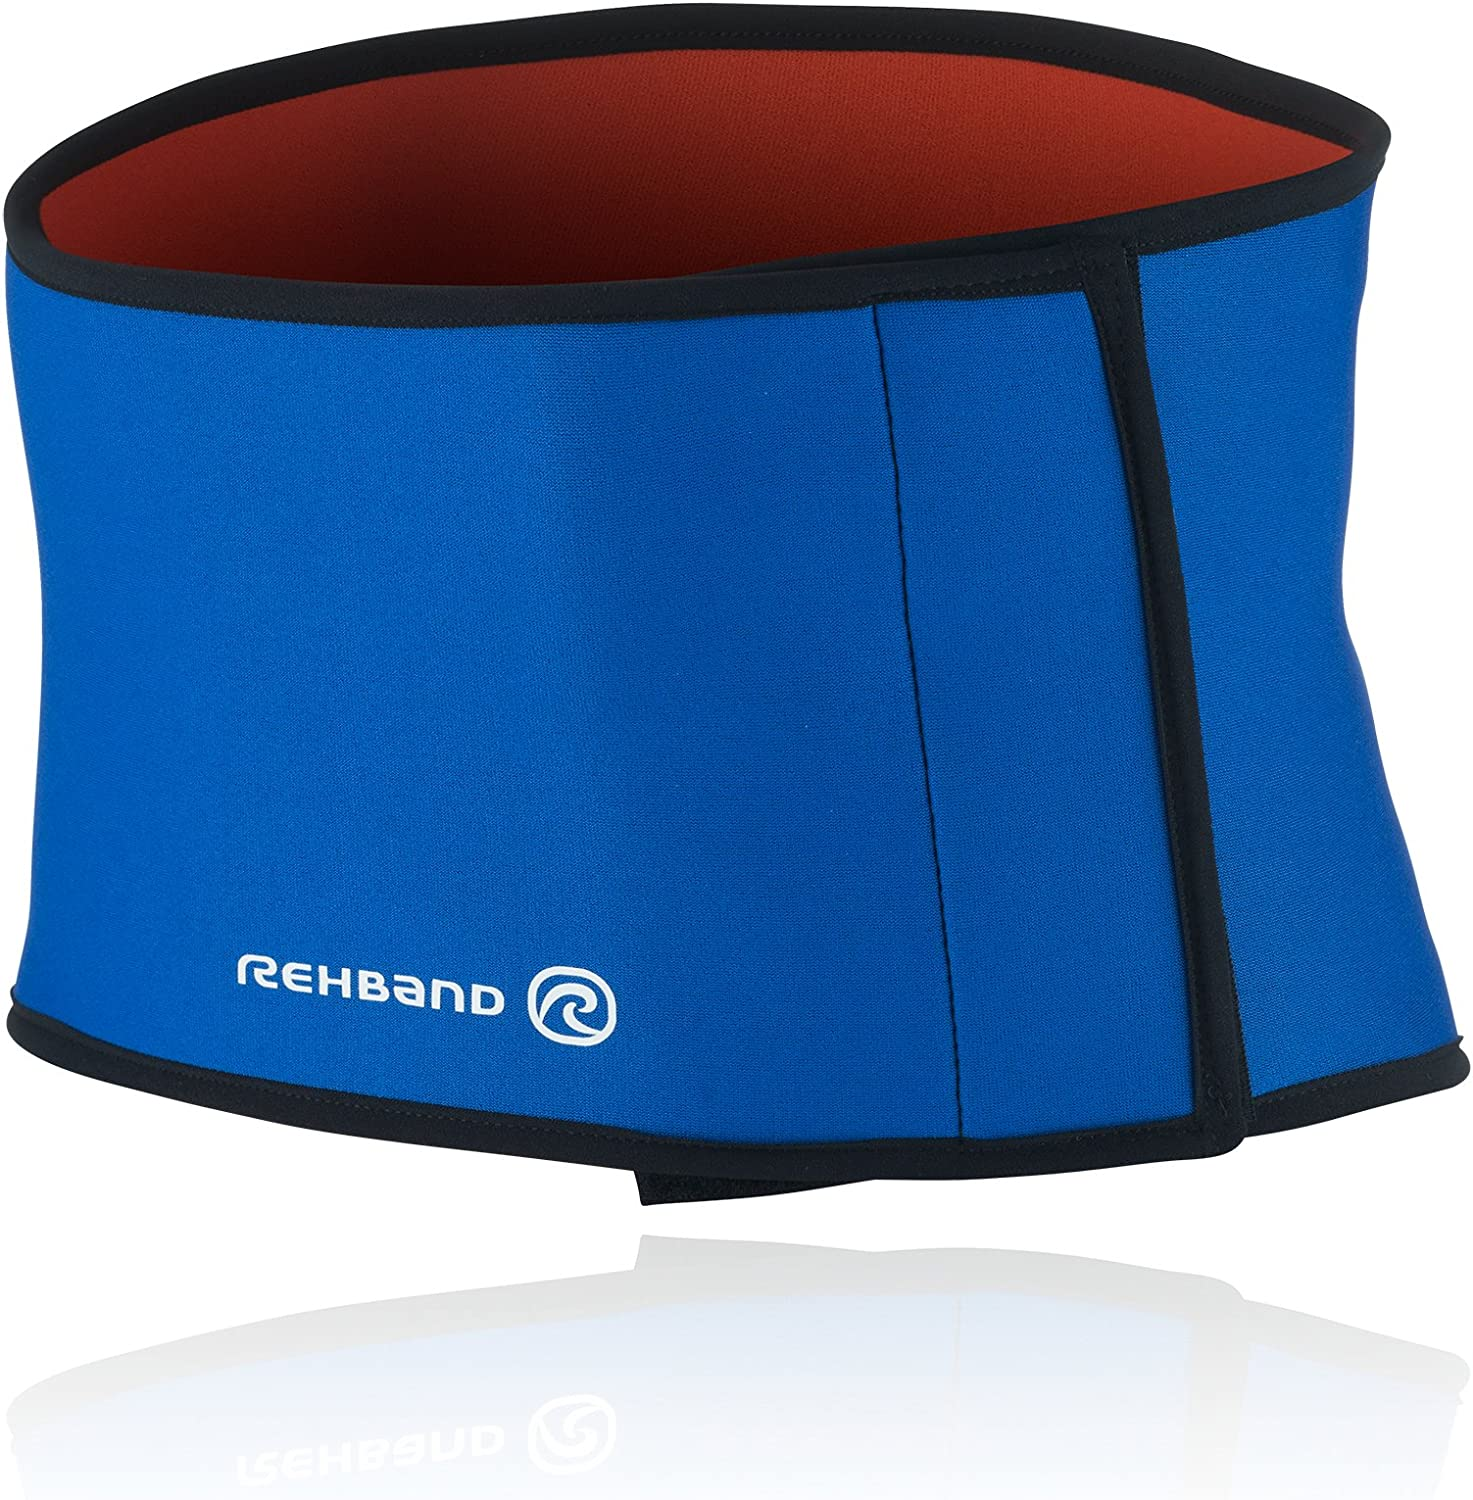 Rehband New Shipping Free Industry No. 1 Basic Back Support - X-Large 7930